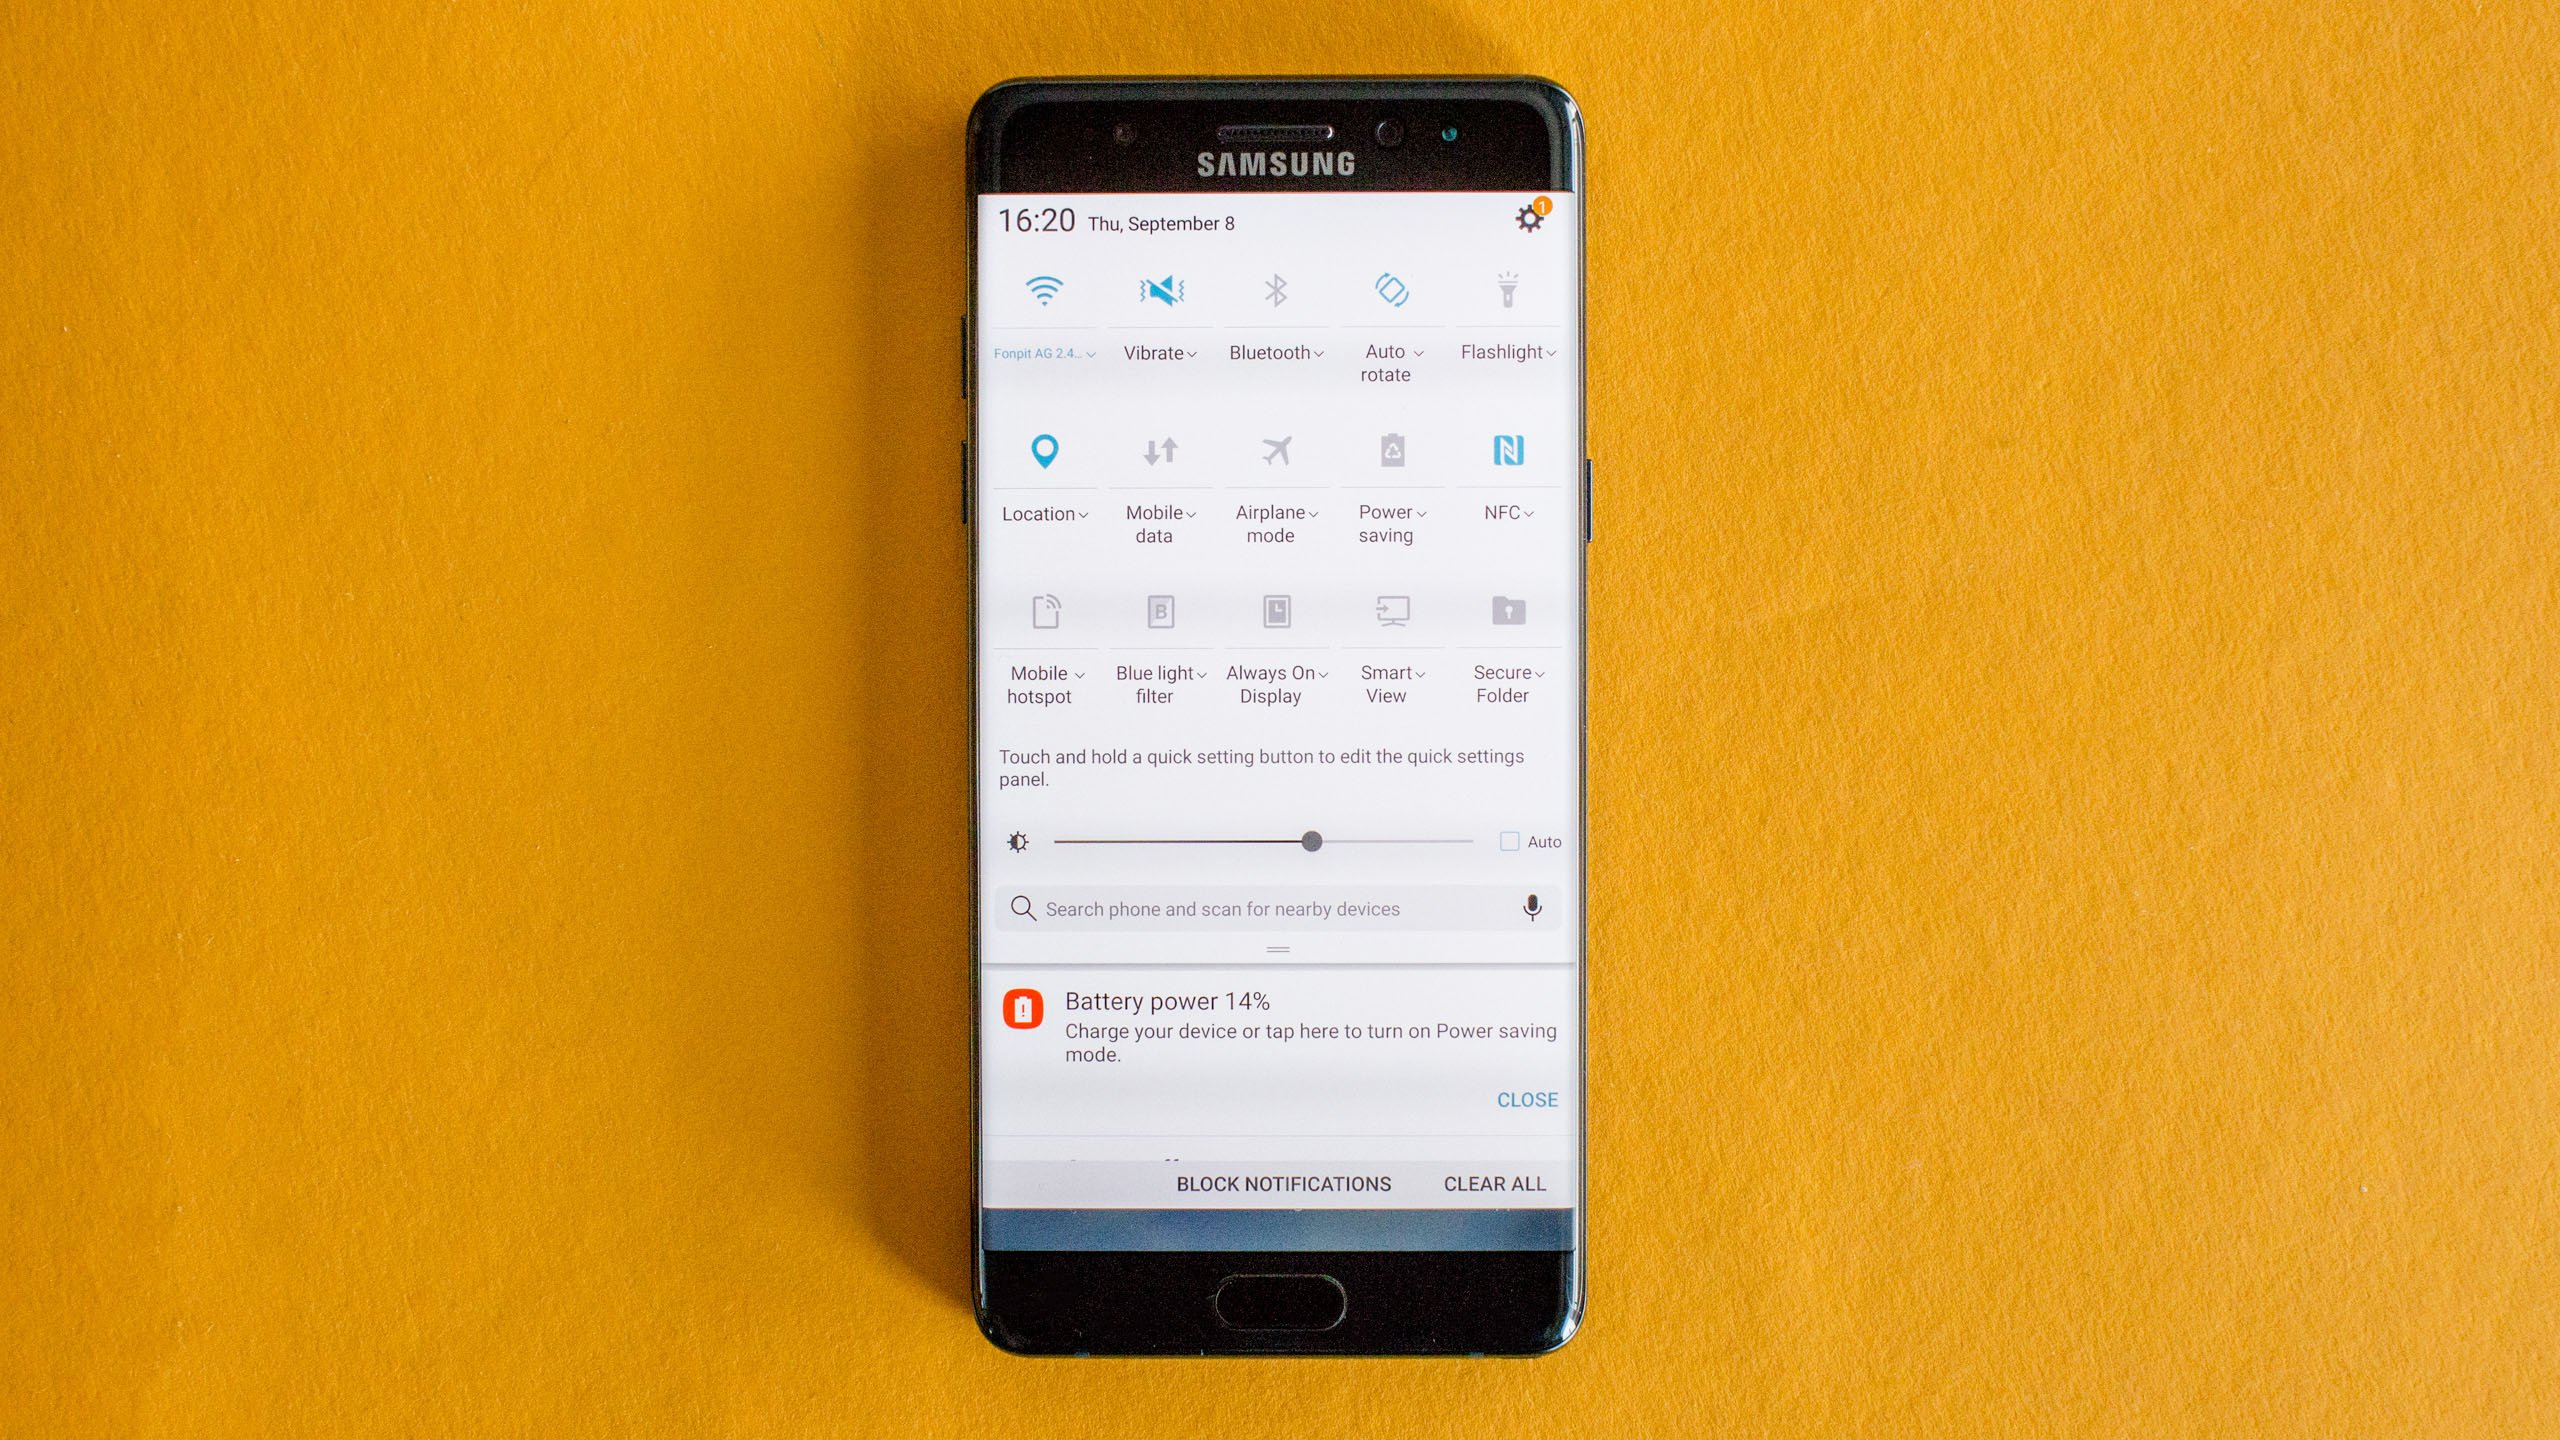 Part 1: Use Samsung Find My Phone to Track the Lost Phone